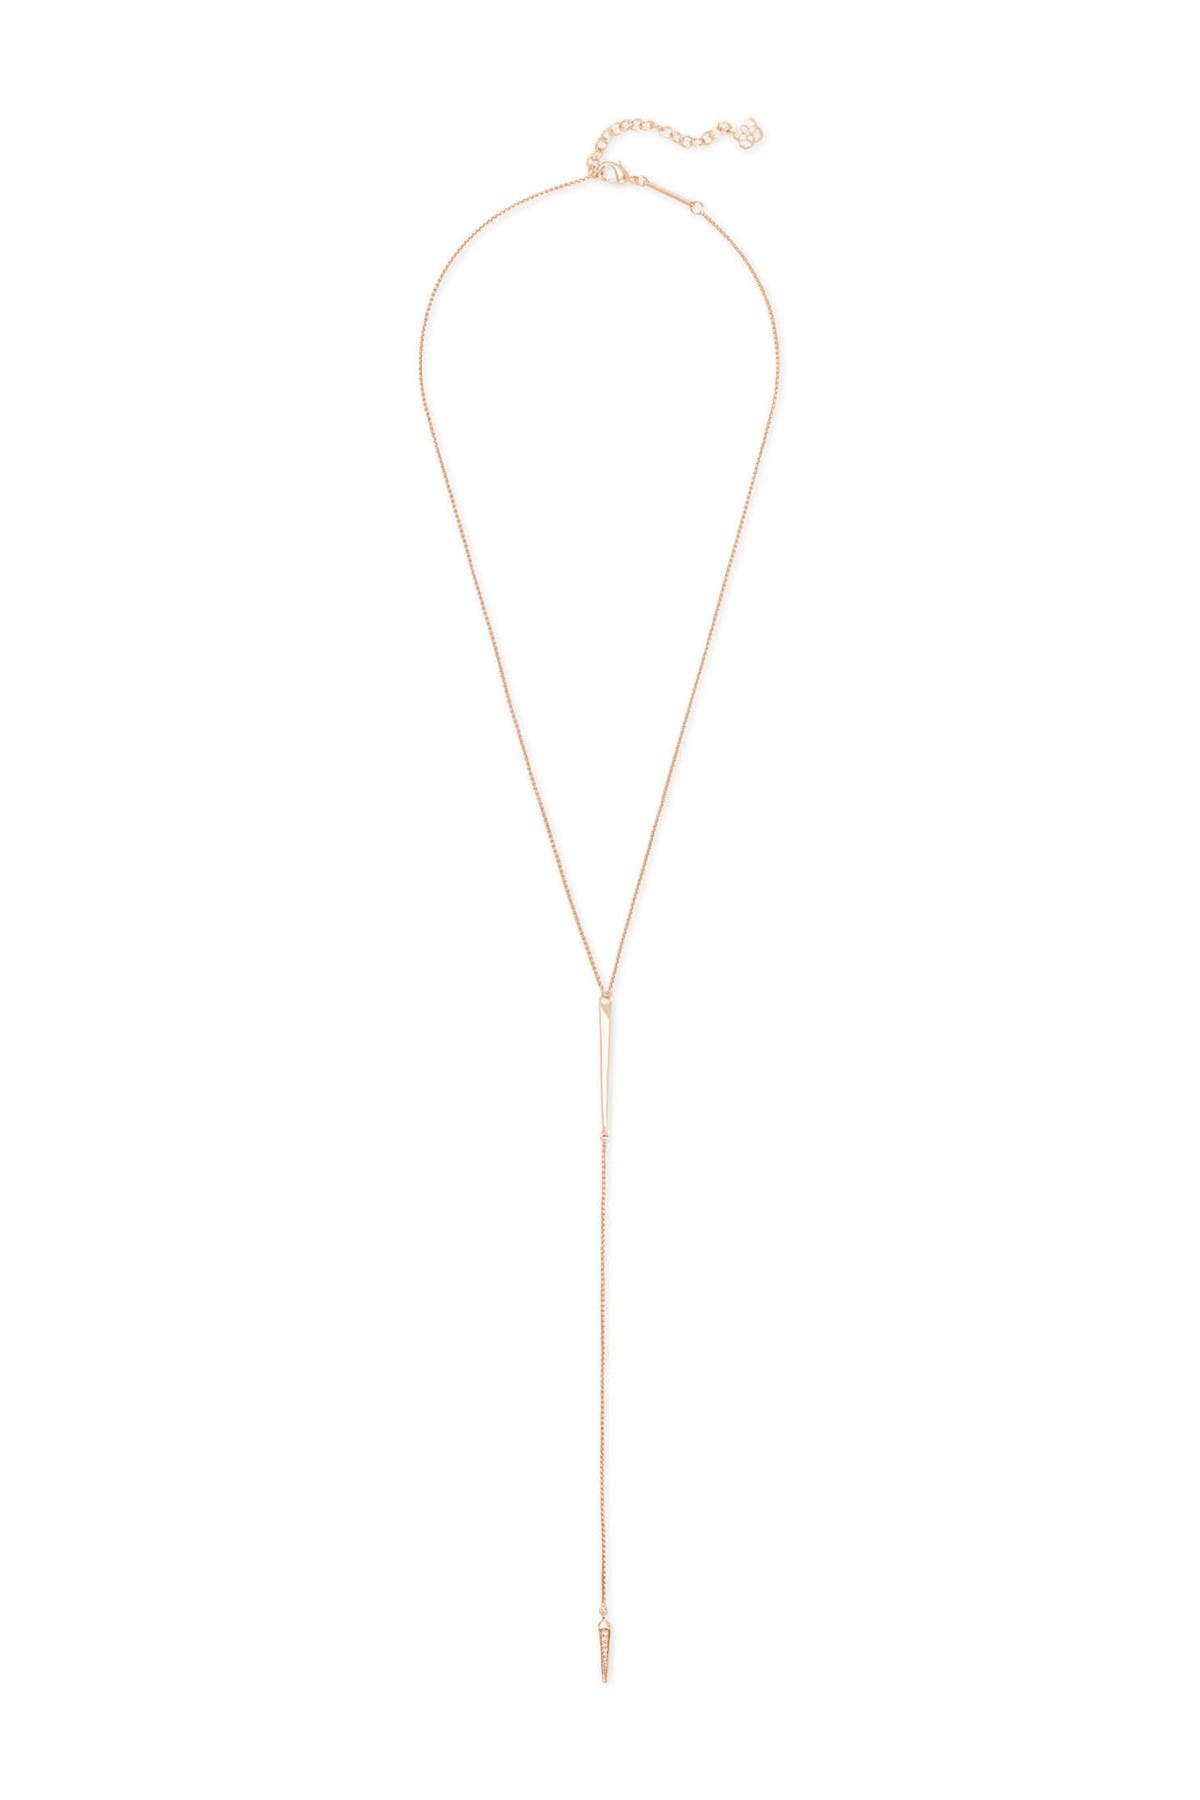 Image of Kendra Scott Vivian 14K Rose Gold Plated CZ Y Drop Necklace